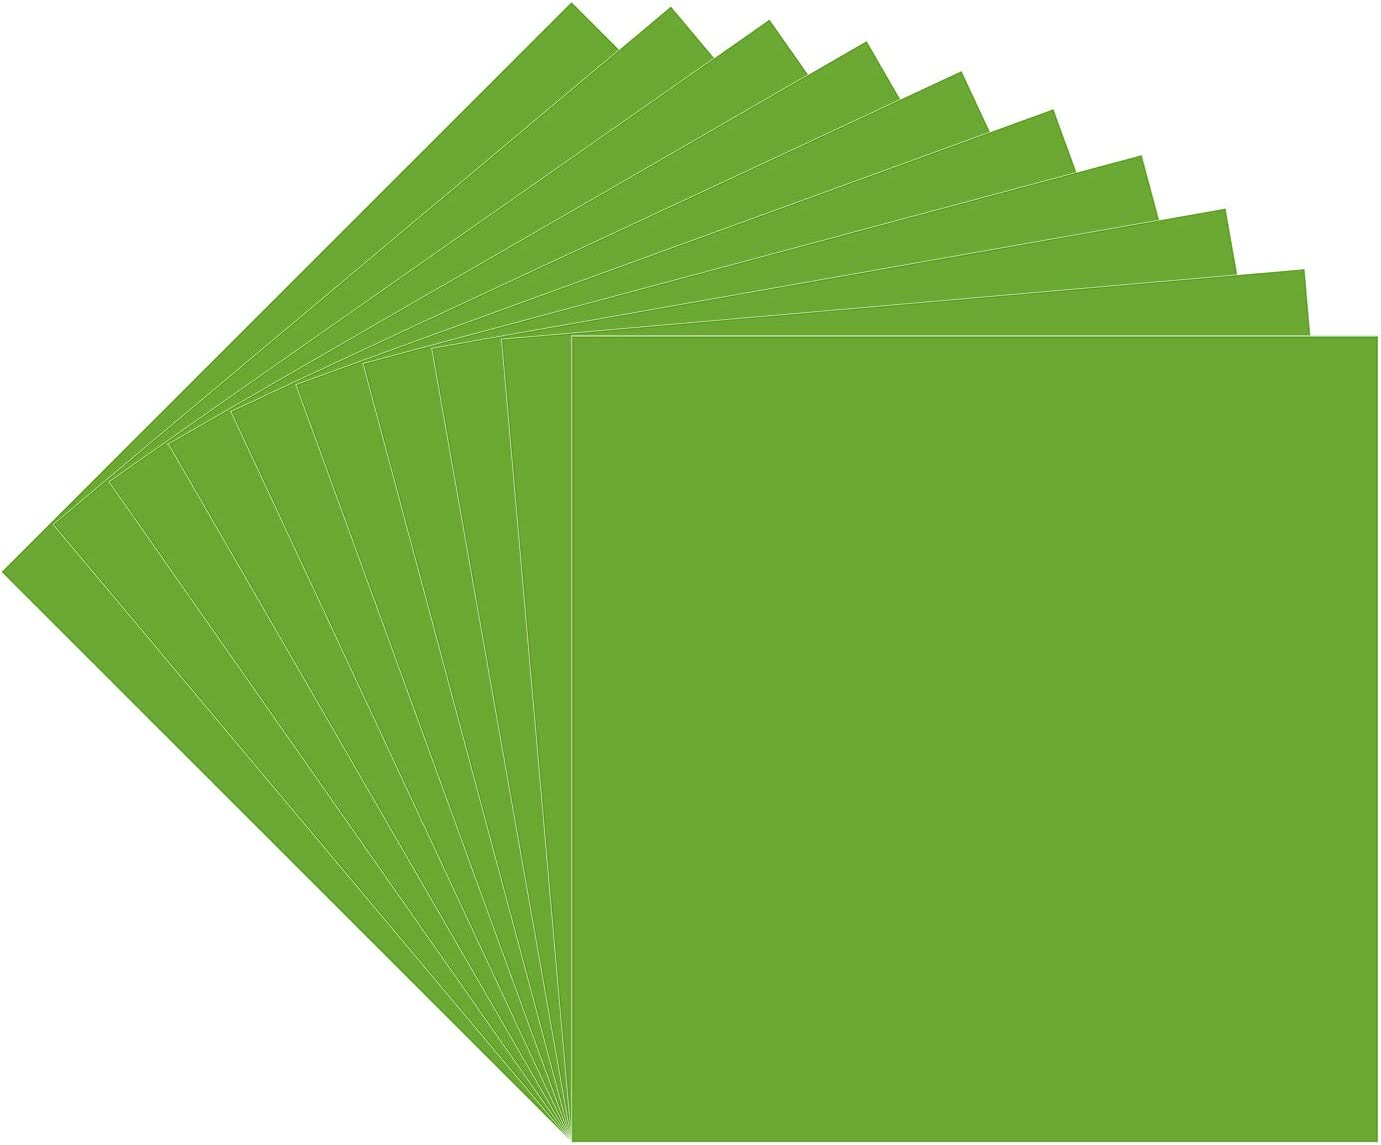 """10 Lime Tree Green Oracal 651 Vinyl Sheets, 12x12"""" Lime Green Permanent Adhesive Backed Vinyl Sheets, Craft Vinyl for Indoor/Outdoor Lettering, Marking, Decorating, Car Decals, Window Graphics, Decors"""